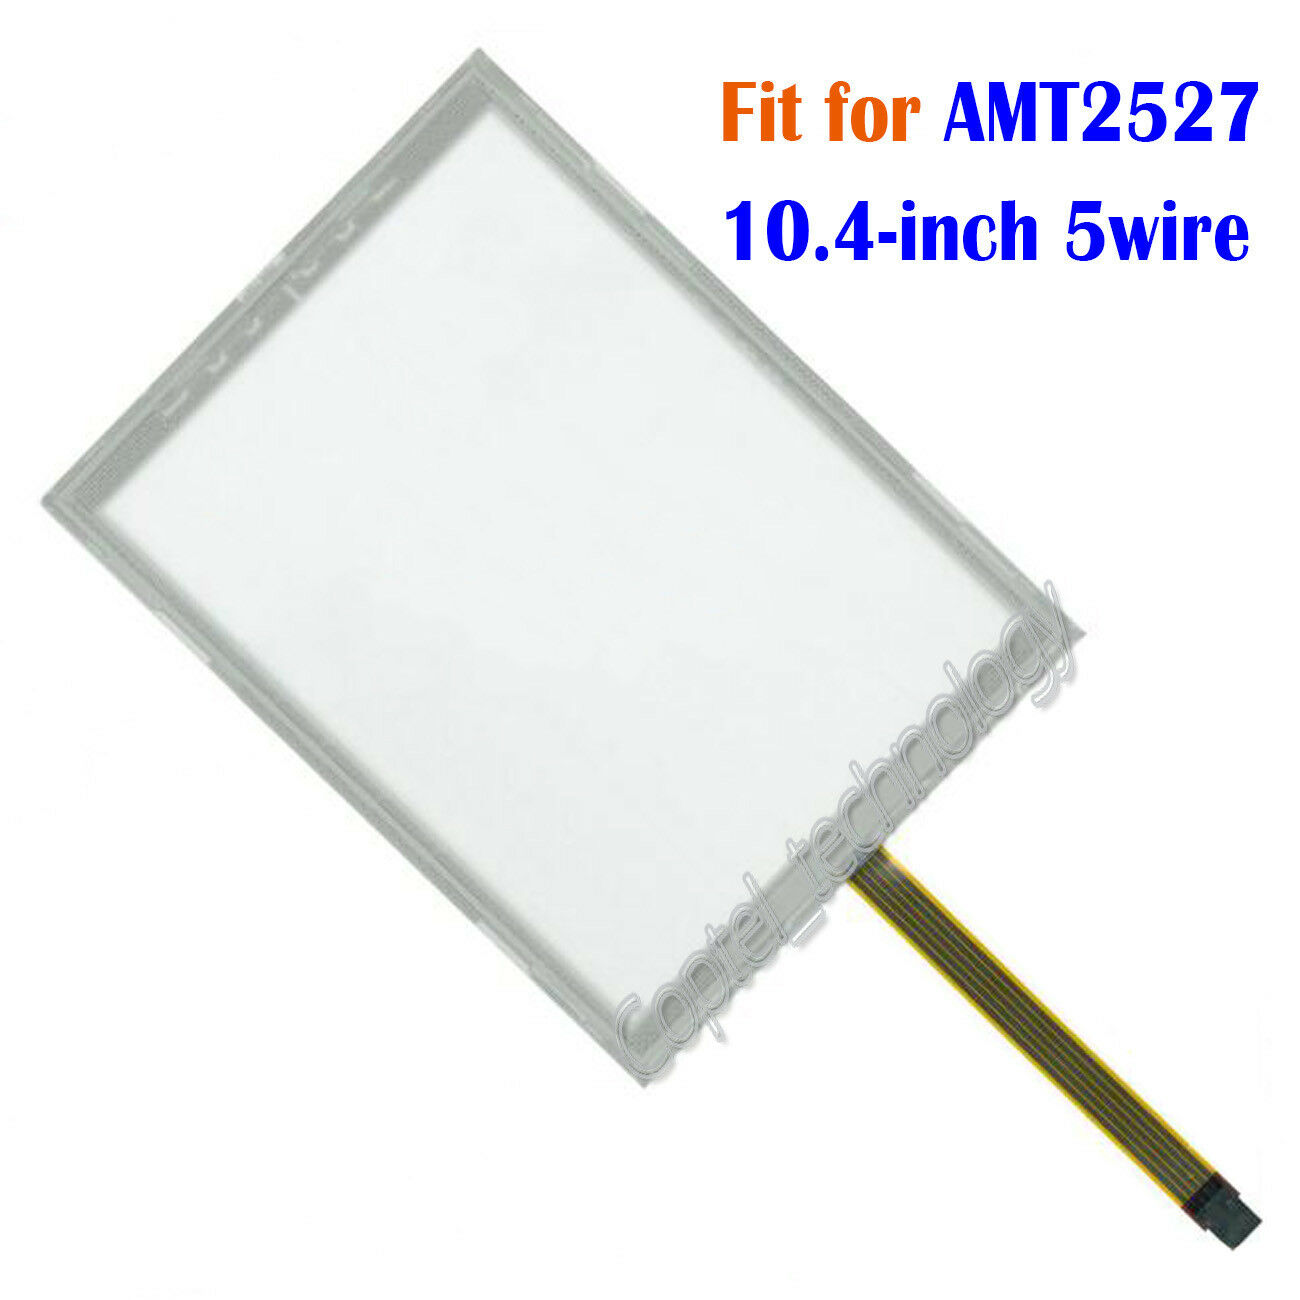 New 10.4-inch 5 wire Touch Screen Glass for AMT2527  AMT 2527  180 days Warranty